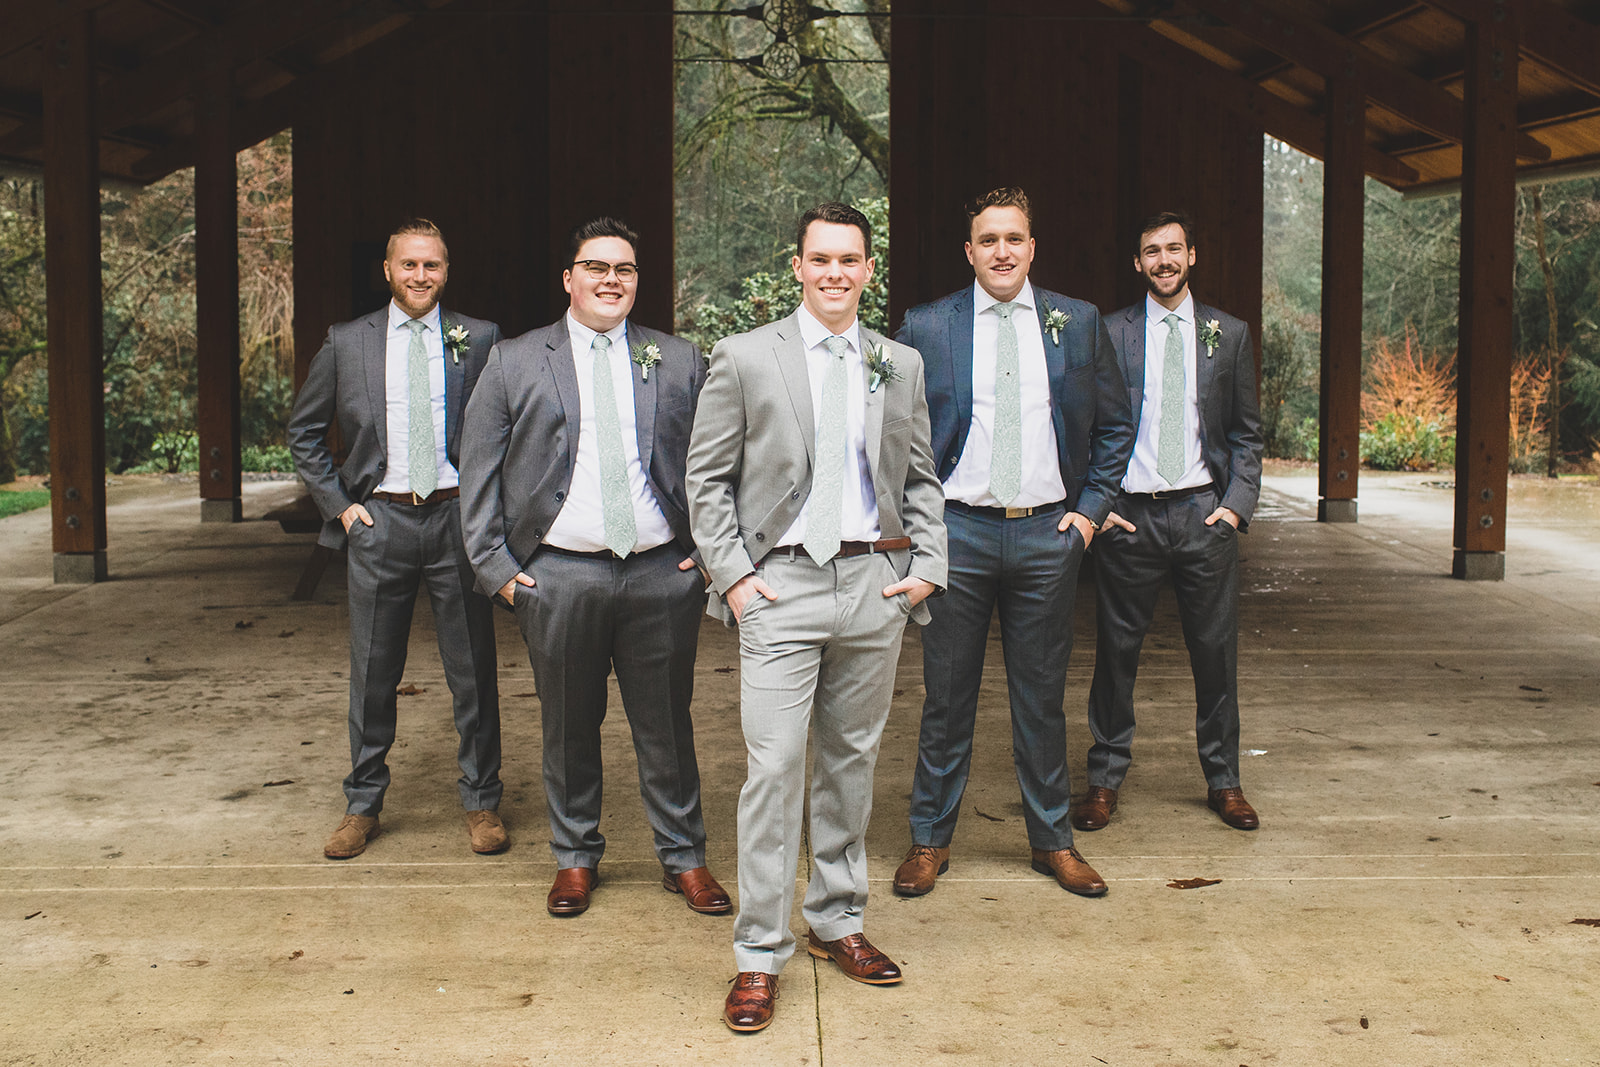 groomsmen spokane wedding bride